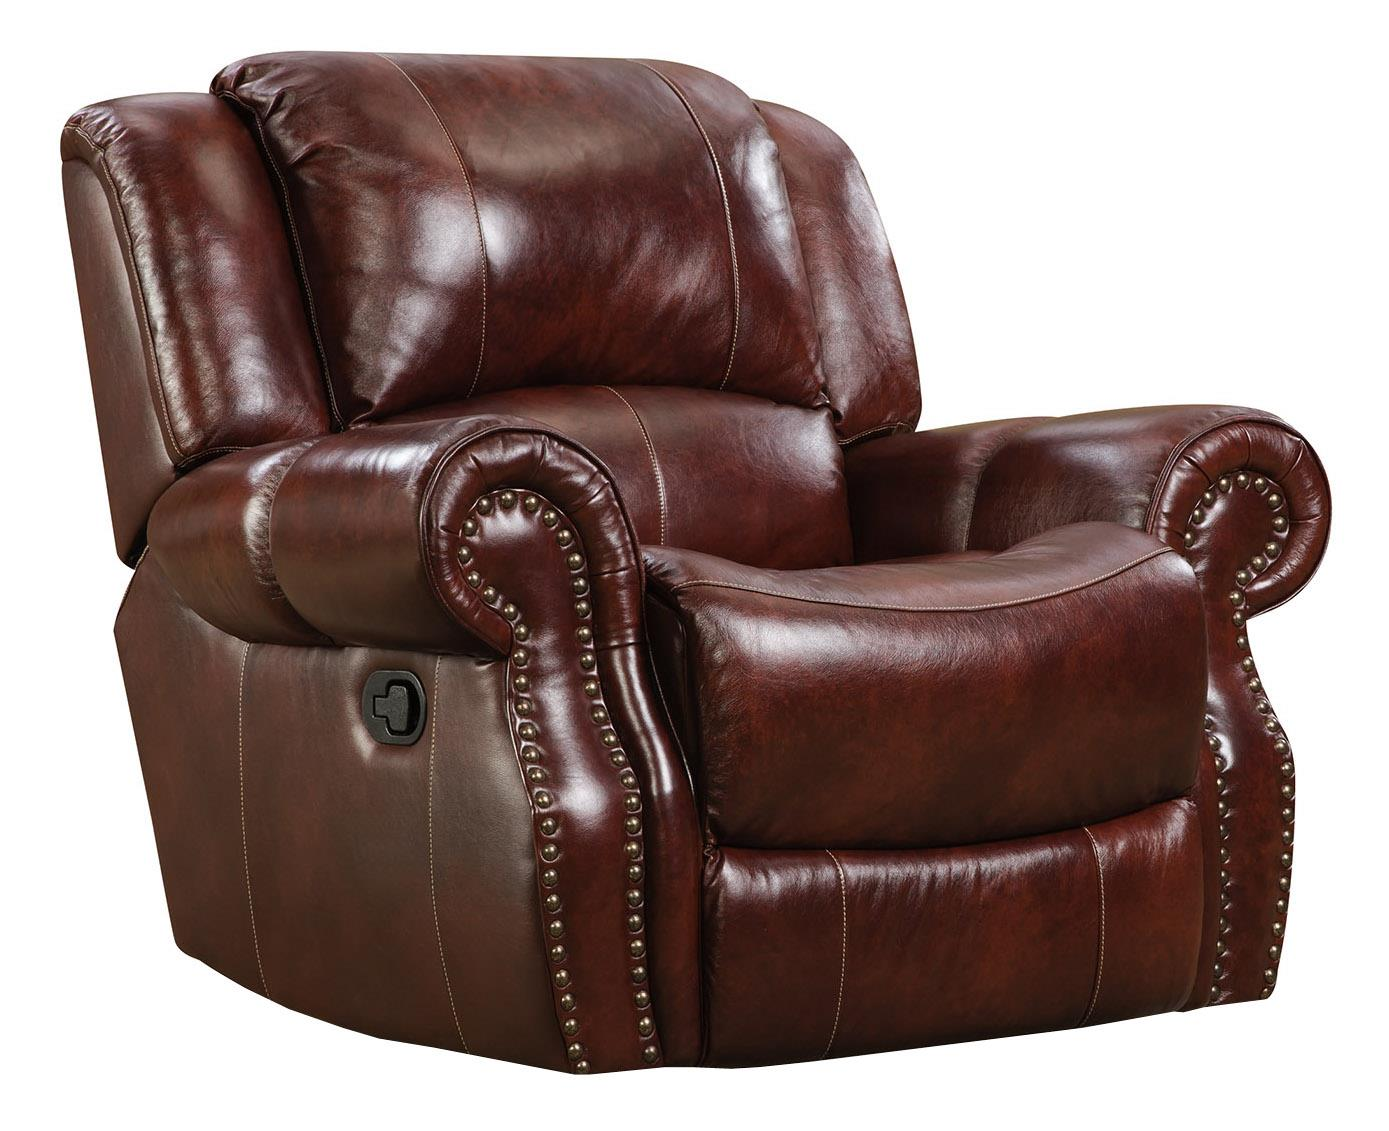 Kensington Rocker Recliner